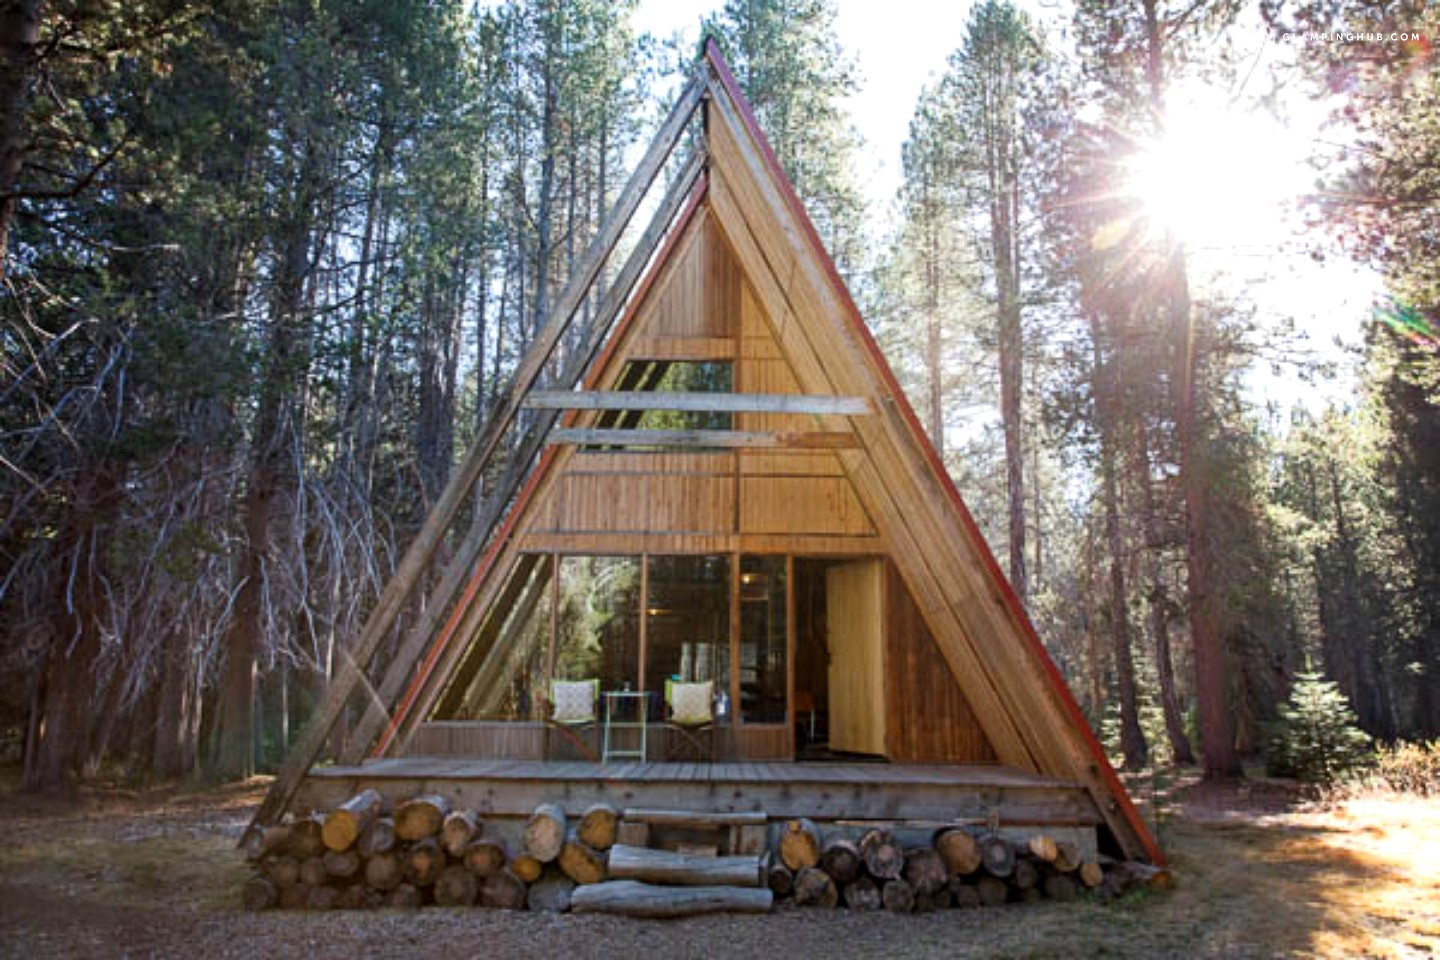 Spacious luxury cabin near yosemite national park california for Design hotel yosemite